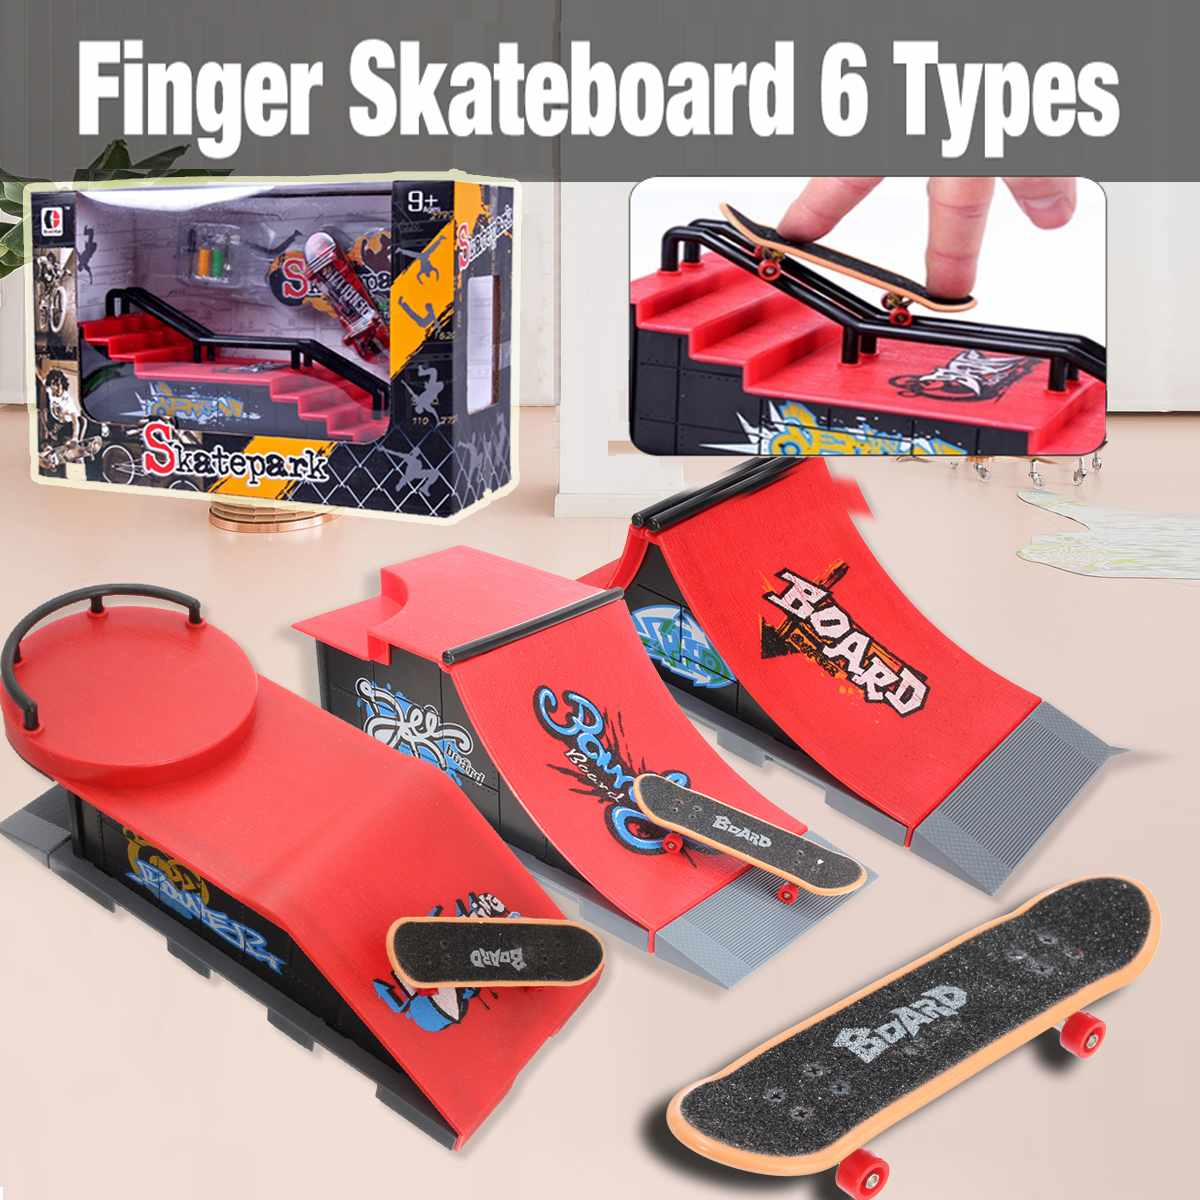 Mini Finger Skate Board Deck Fingerboard Skate Park Kit Table Game Ramp Track Toy Mini Skateboard For Extreme Sports Enthusiasts